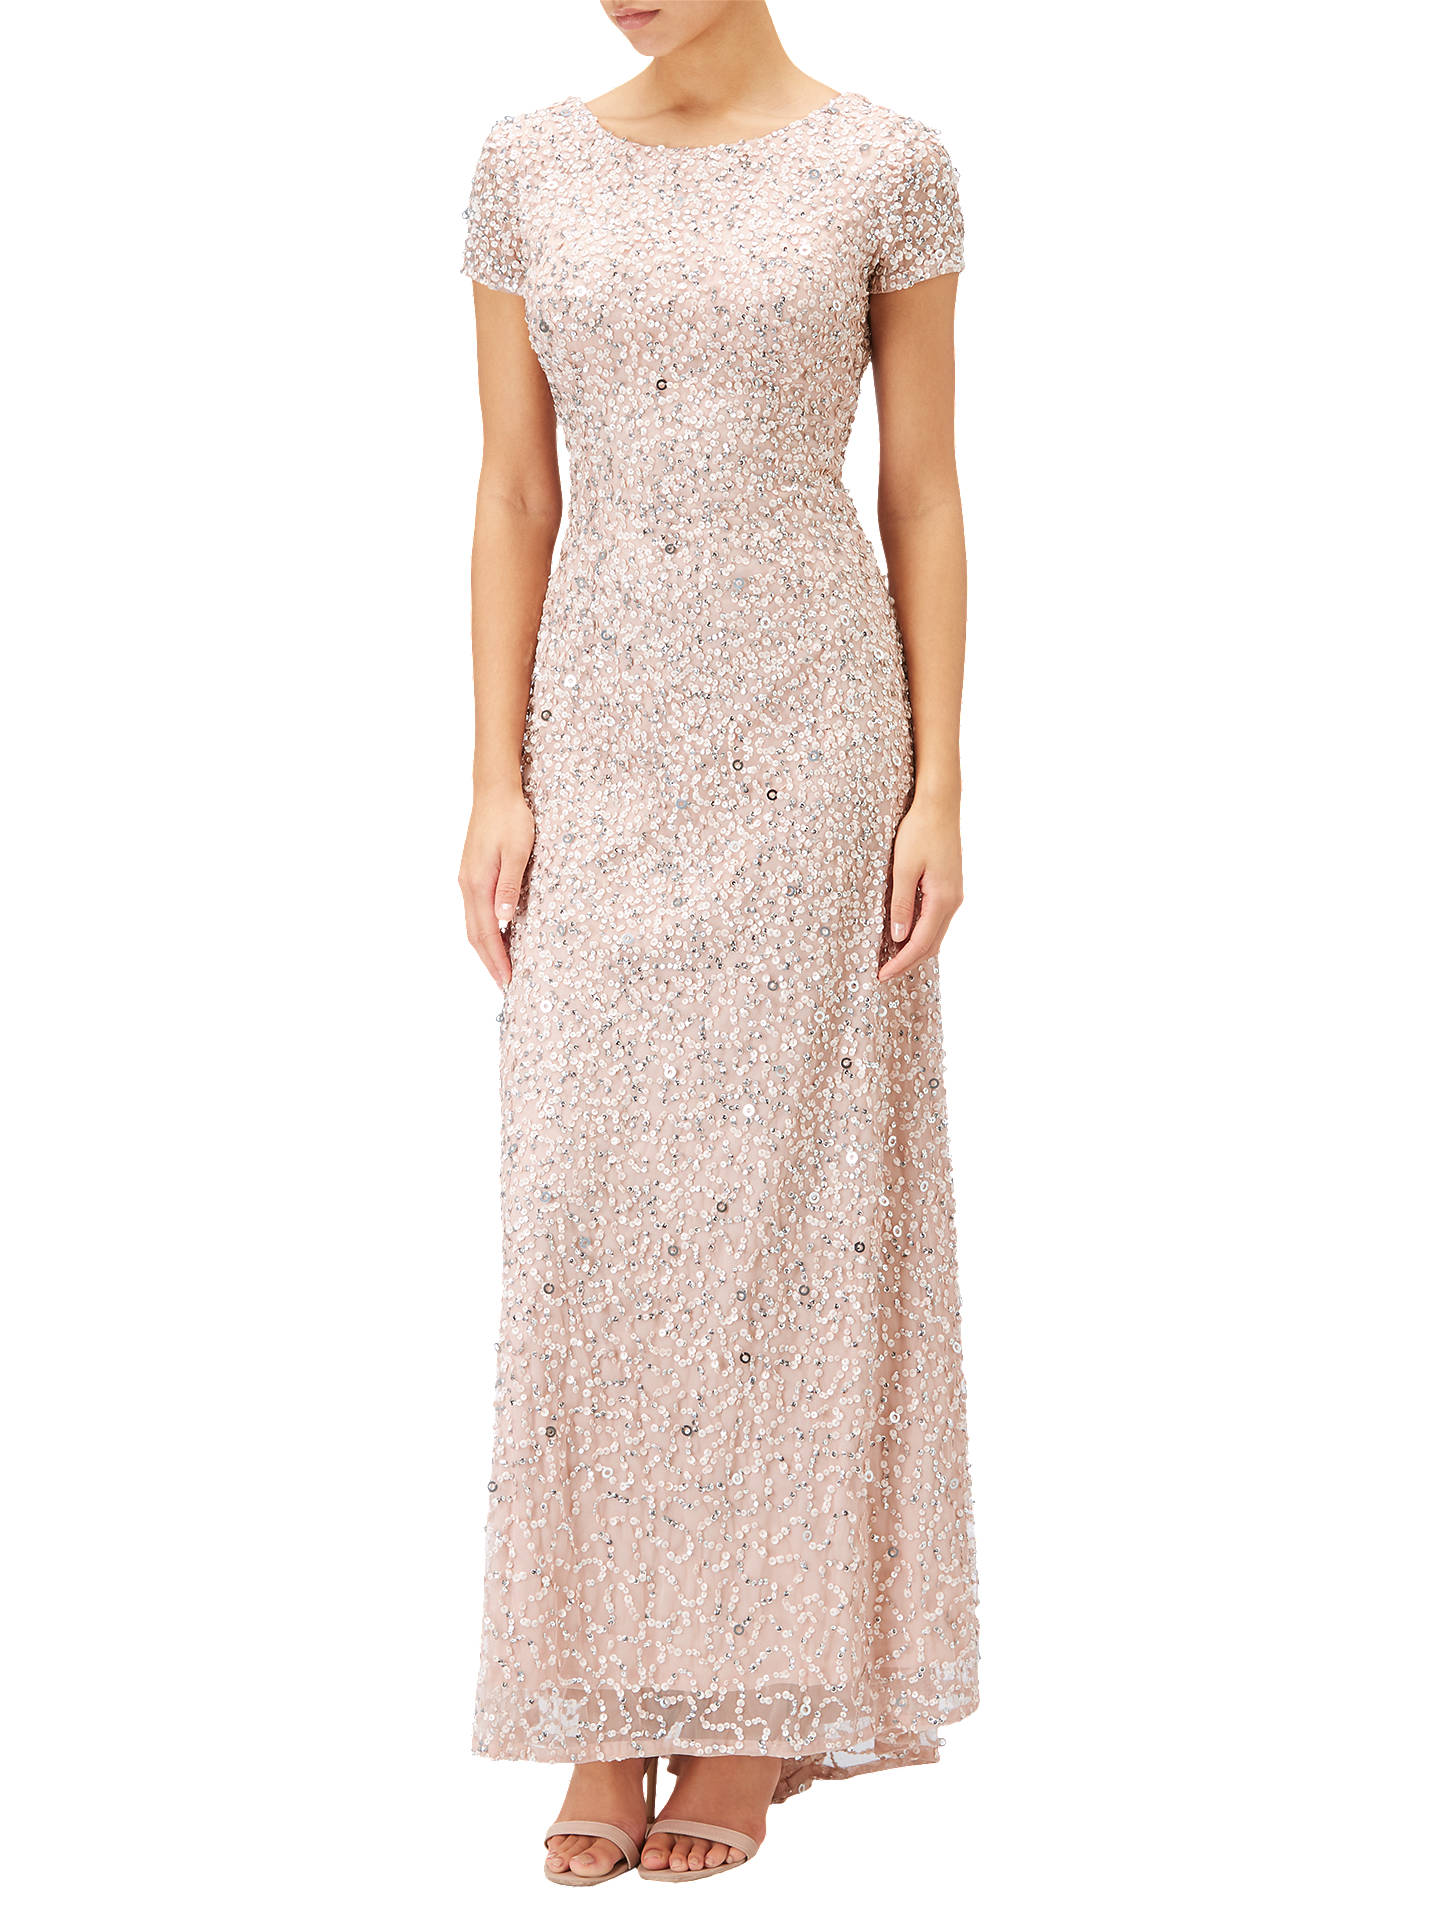 Adrianna Papell Petite Scoop Back Sequin Evening Dress, Blush at ...